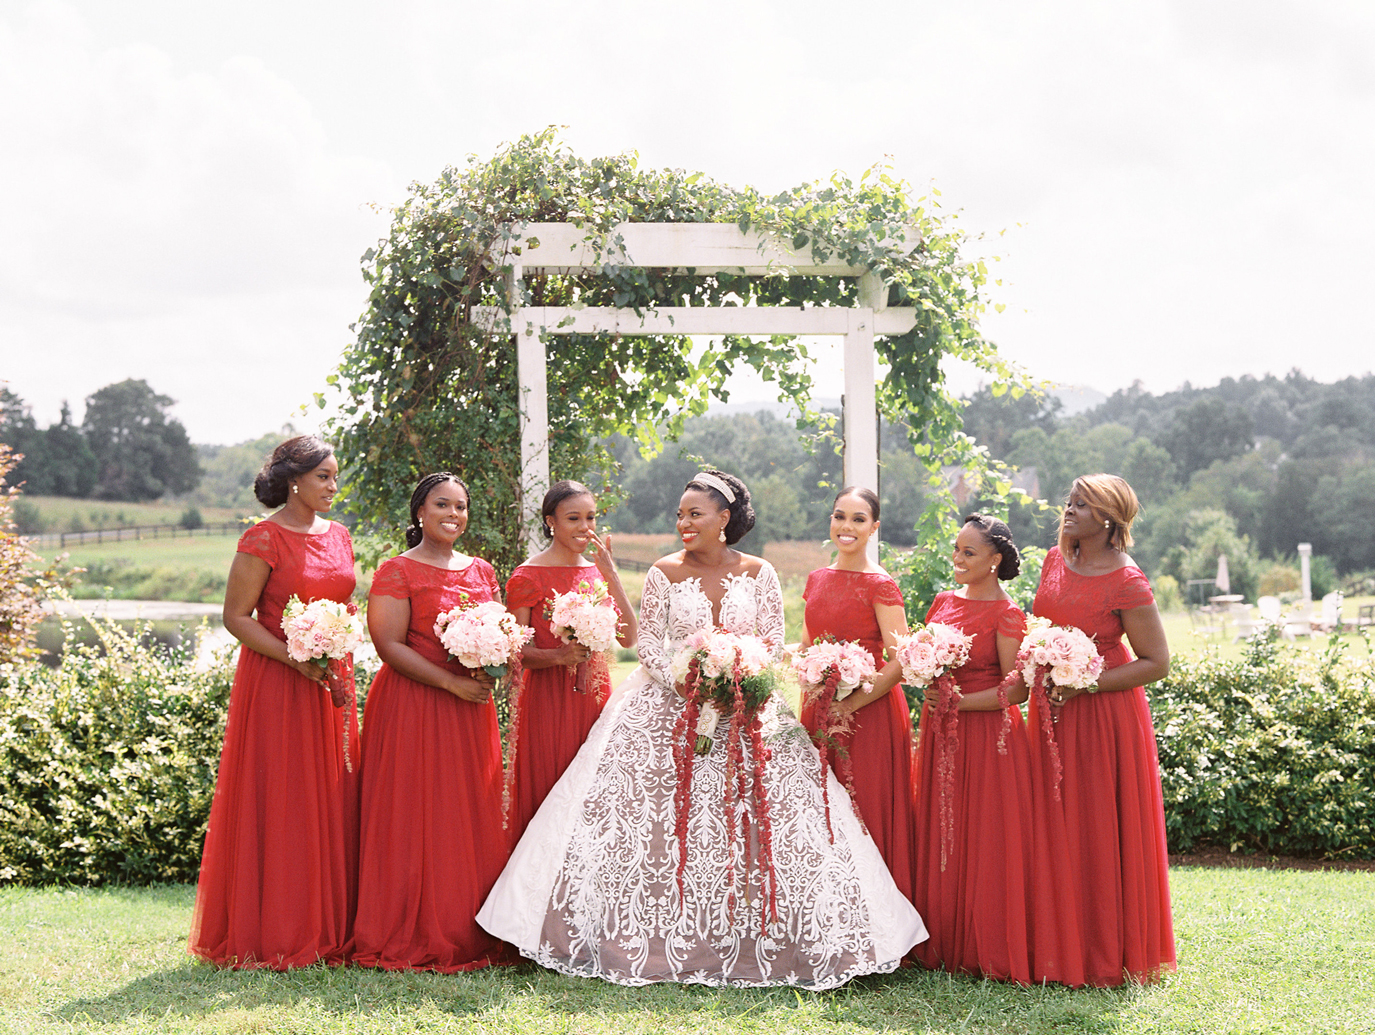 bride in wedding dress with bridesmaids in long red dresses